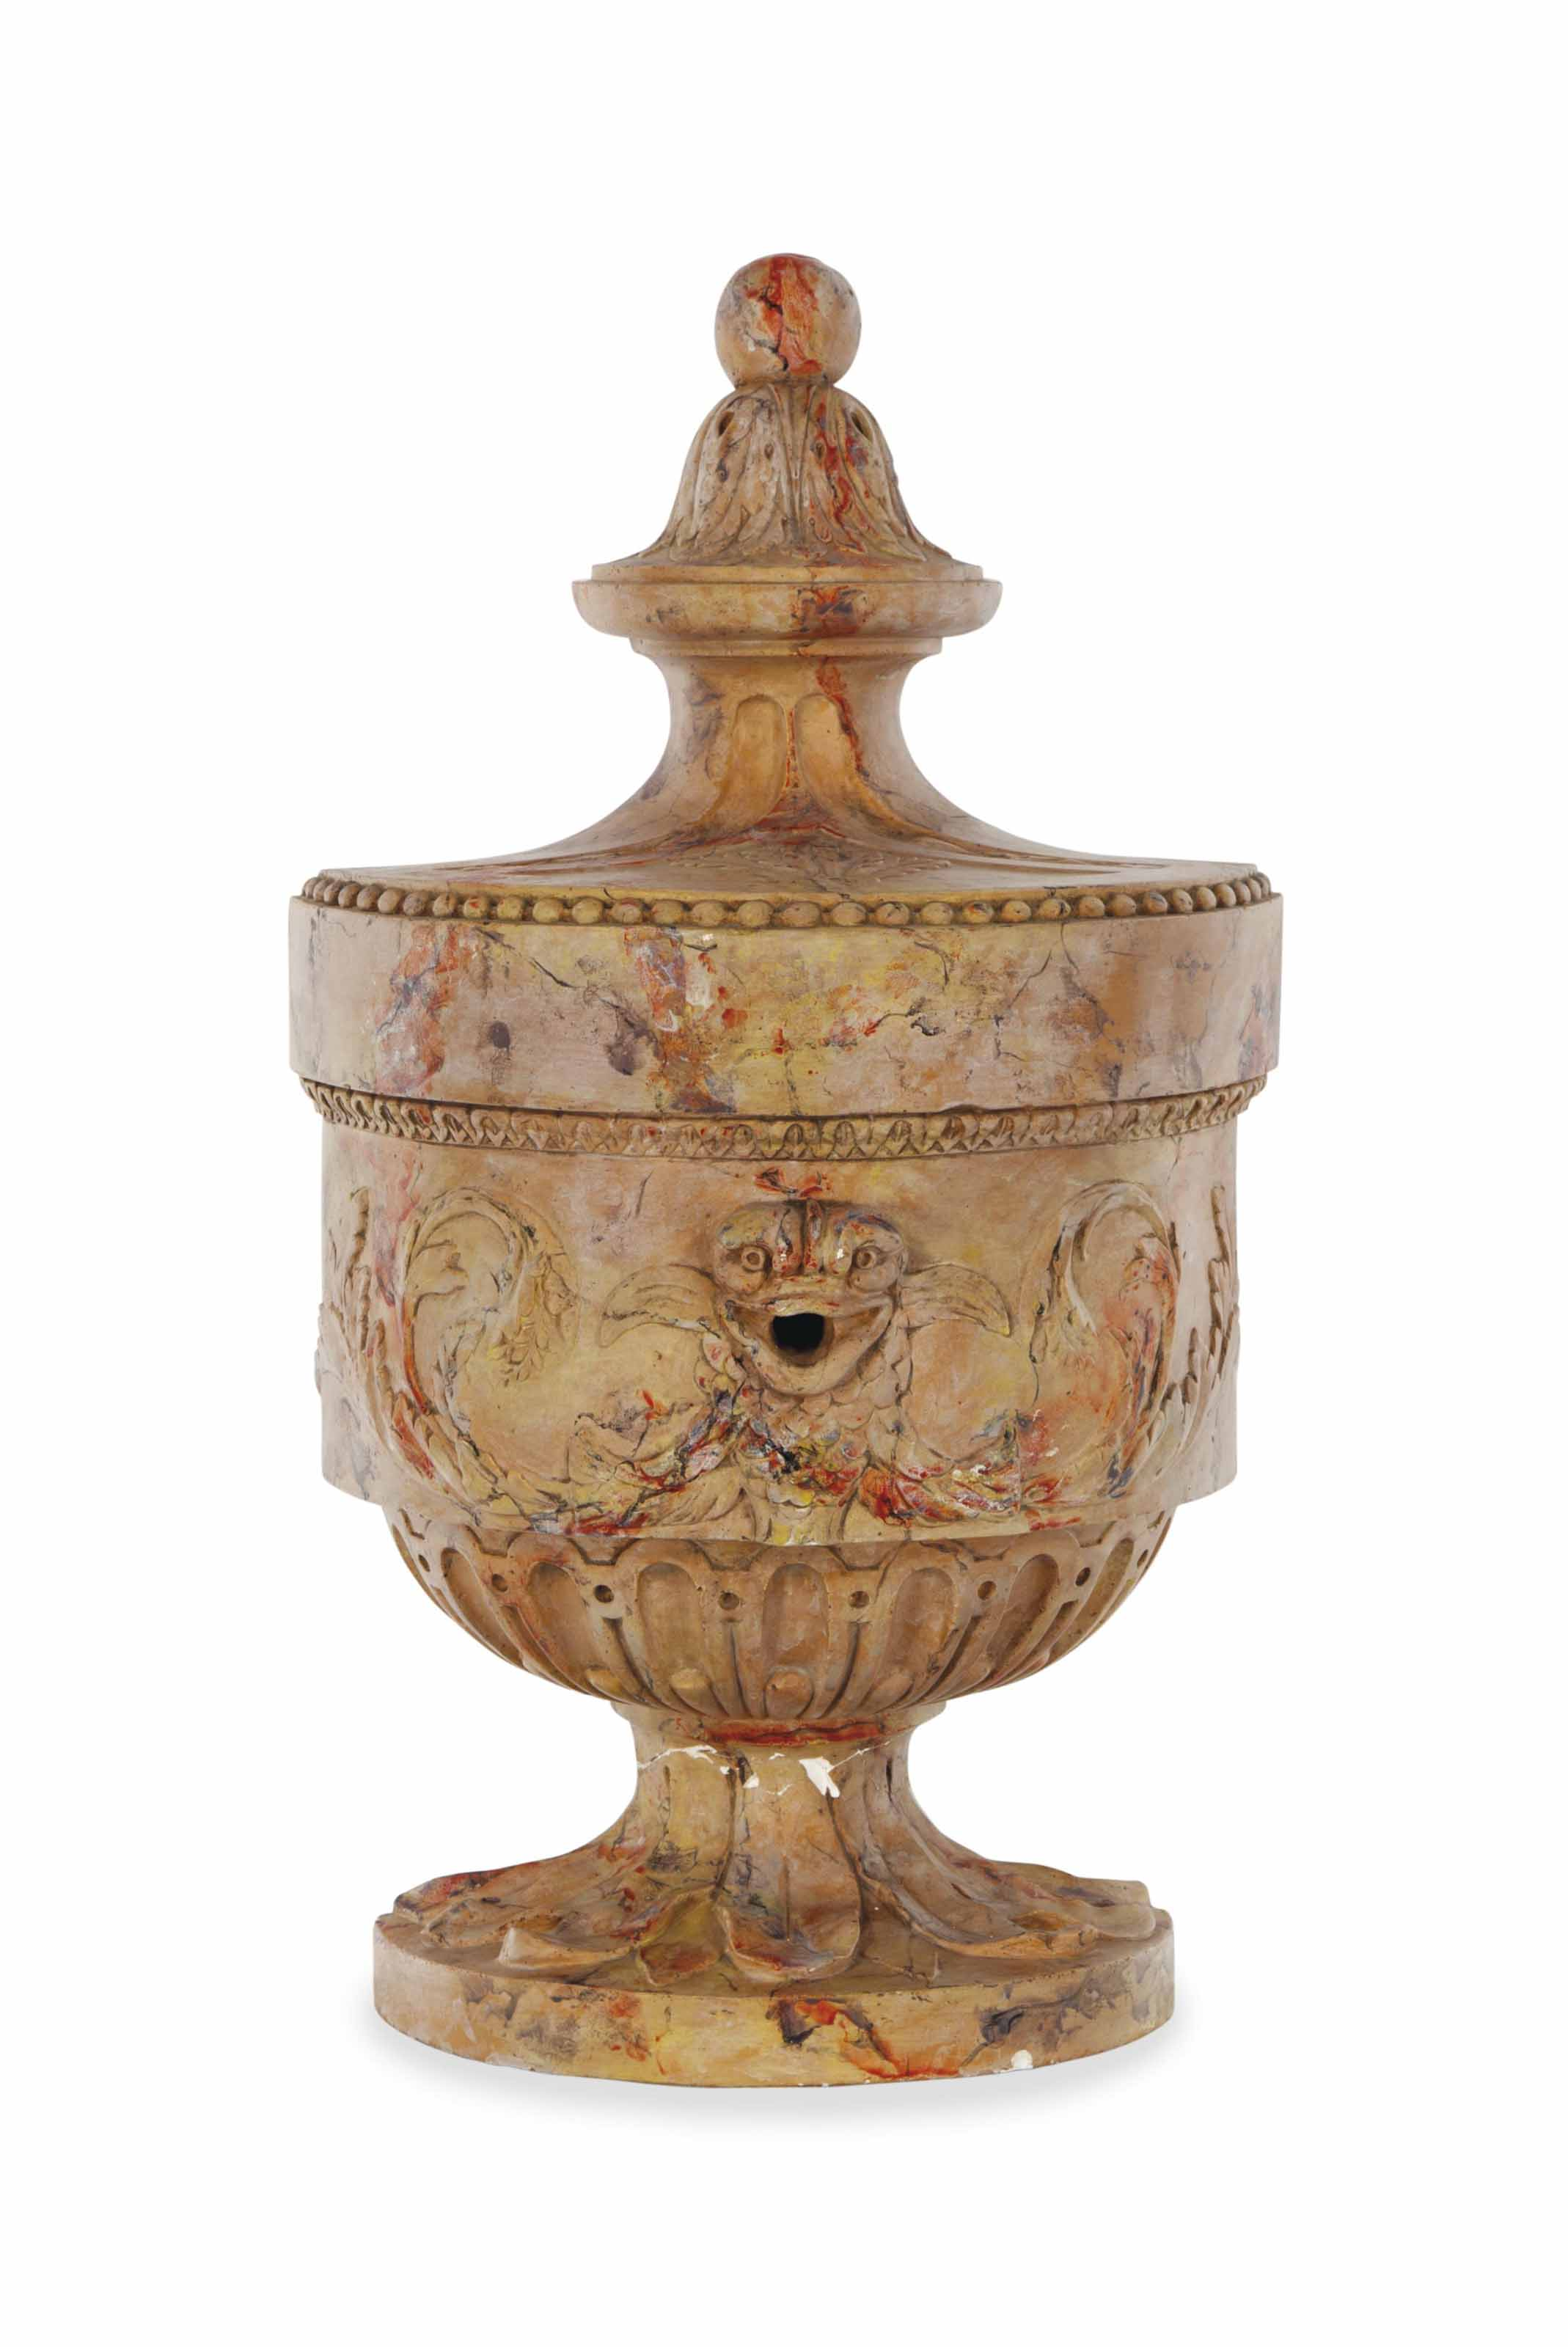 A FAUX MARBLE-DECORATED PLASTER WATER FONT,